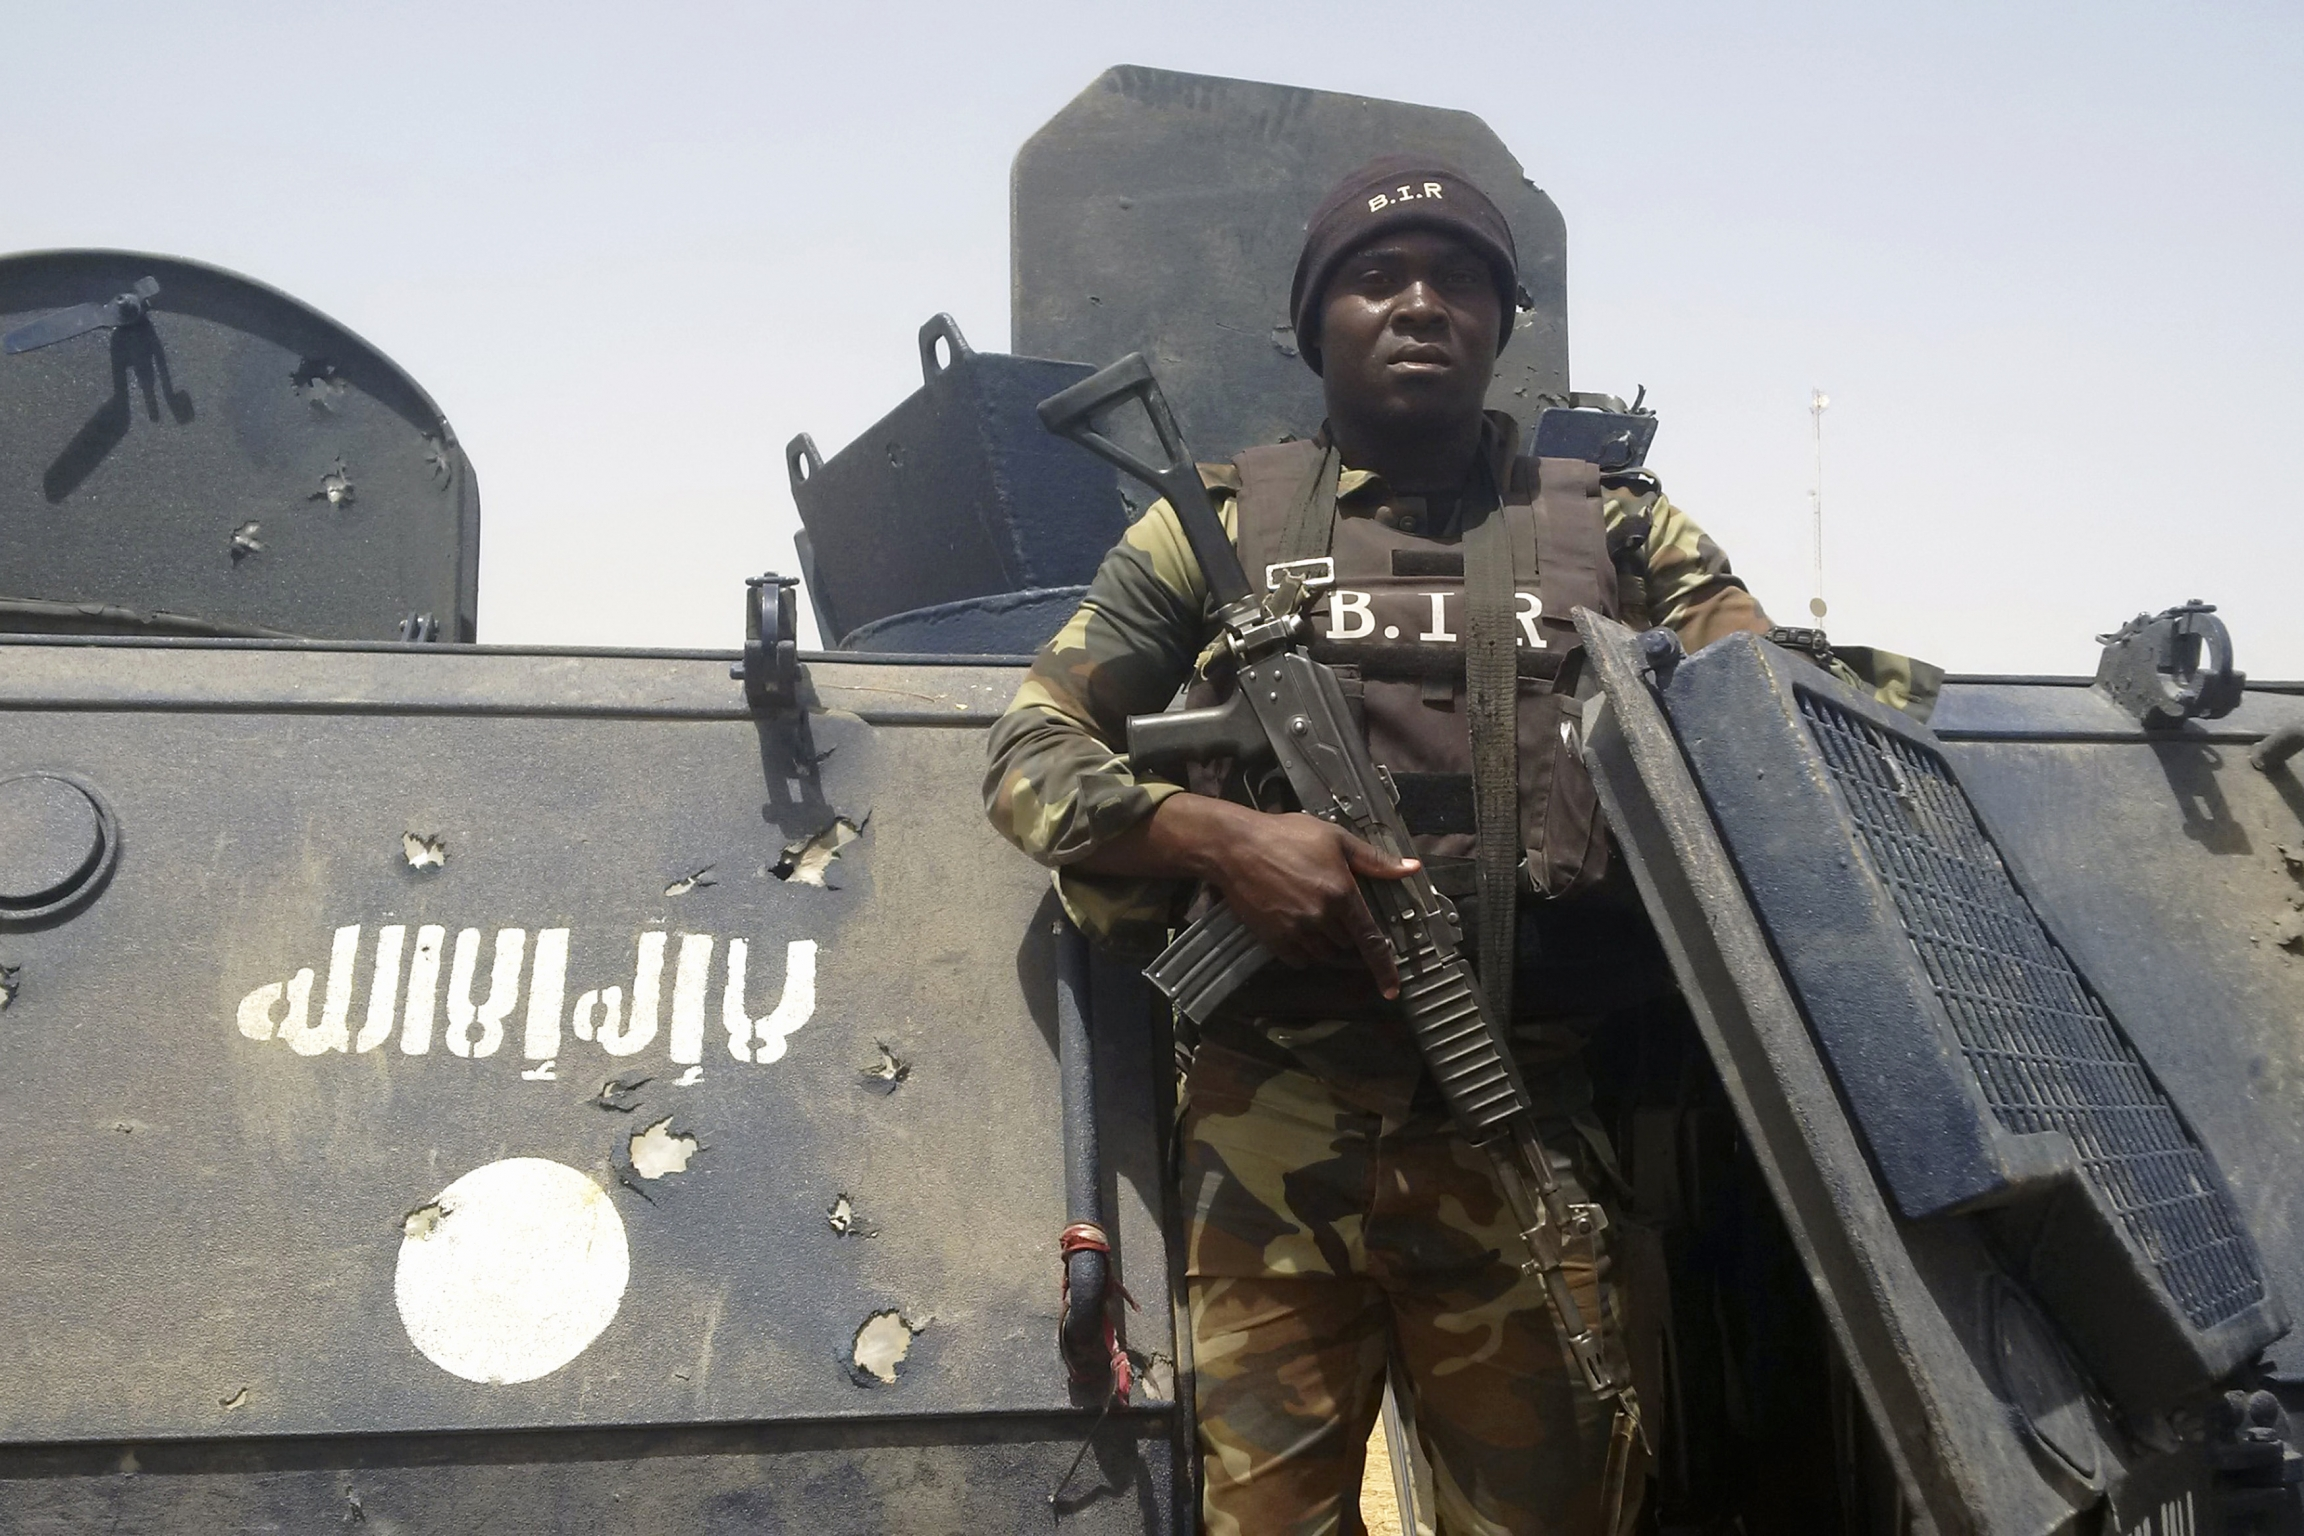 Cameroonian soldier stands near tank with Boko Haram logo on it.